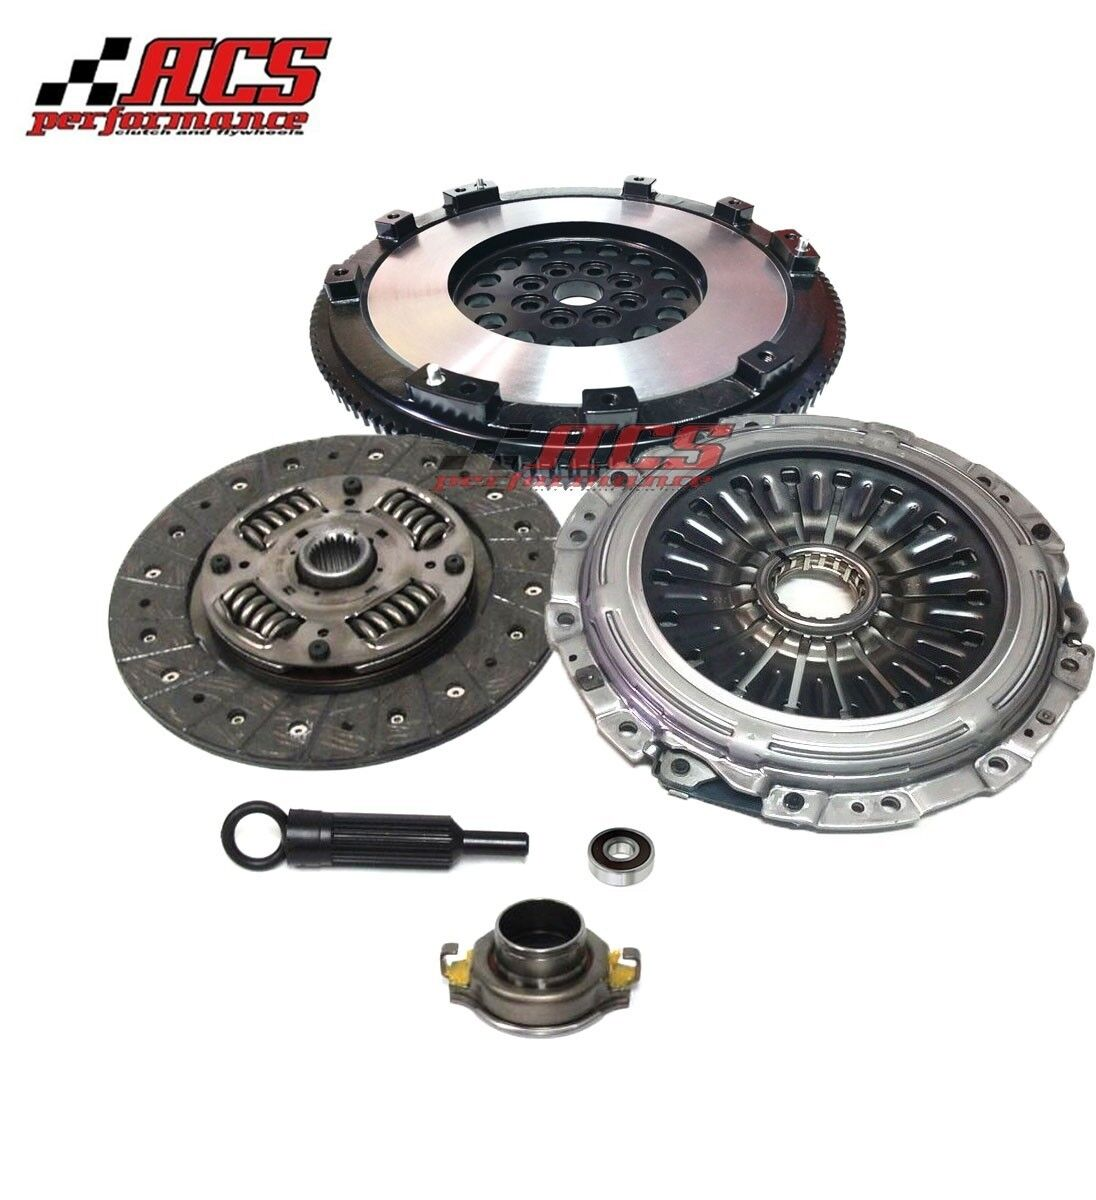 Oem Premium Clutch Kit+Flywheel For 2004-2010 Subaru